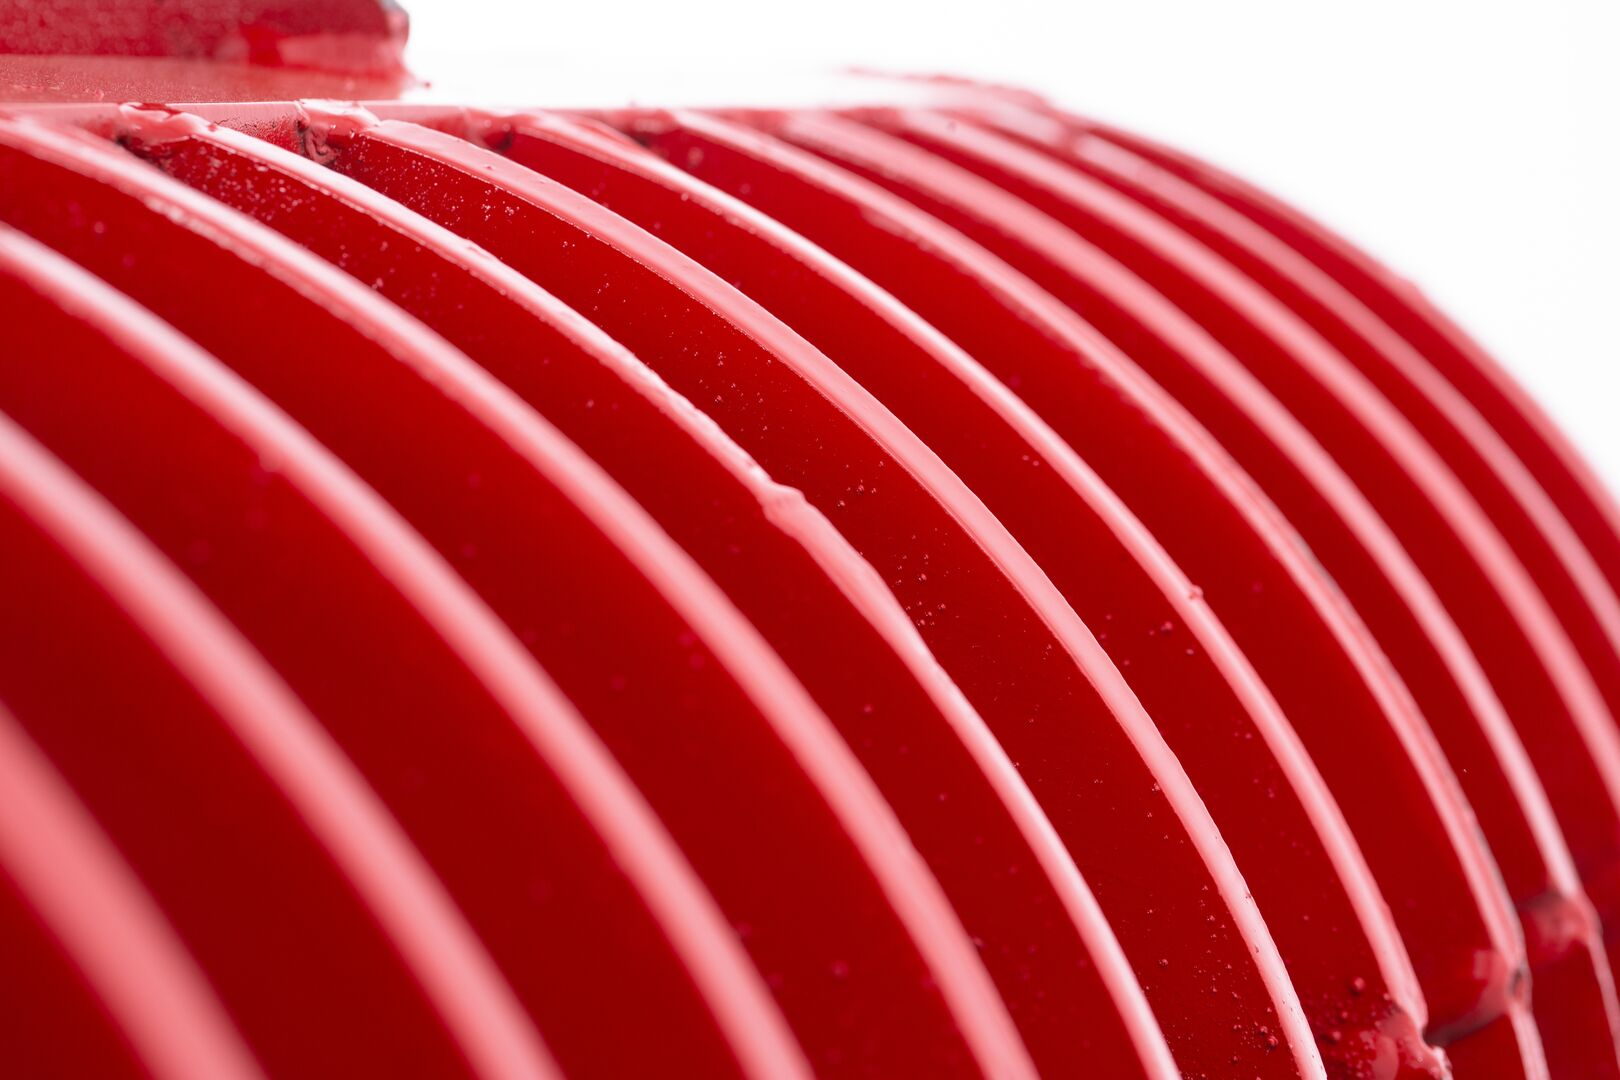 Red ridged coil